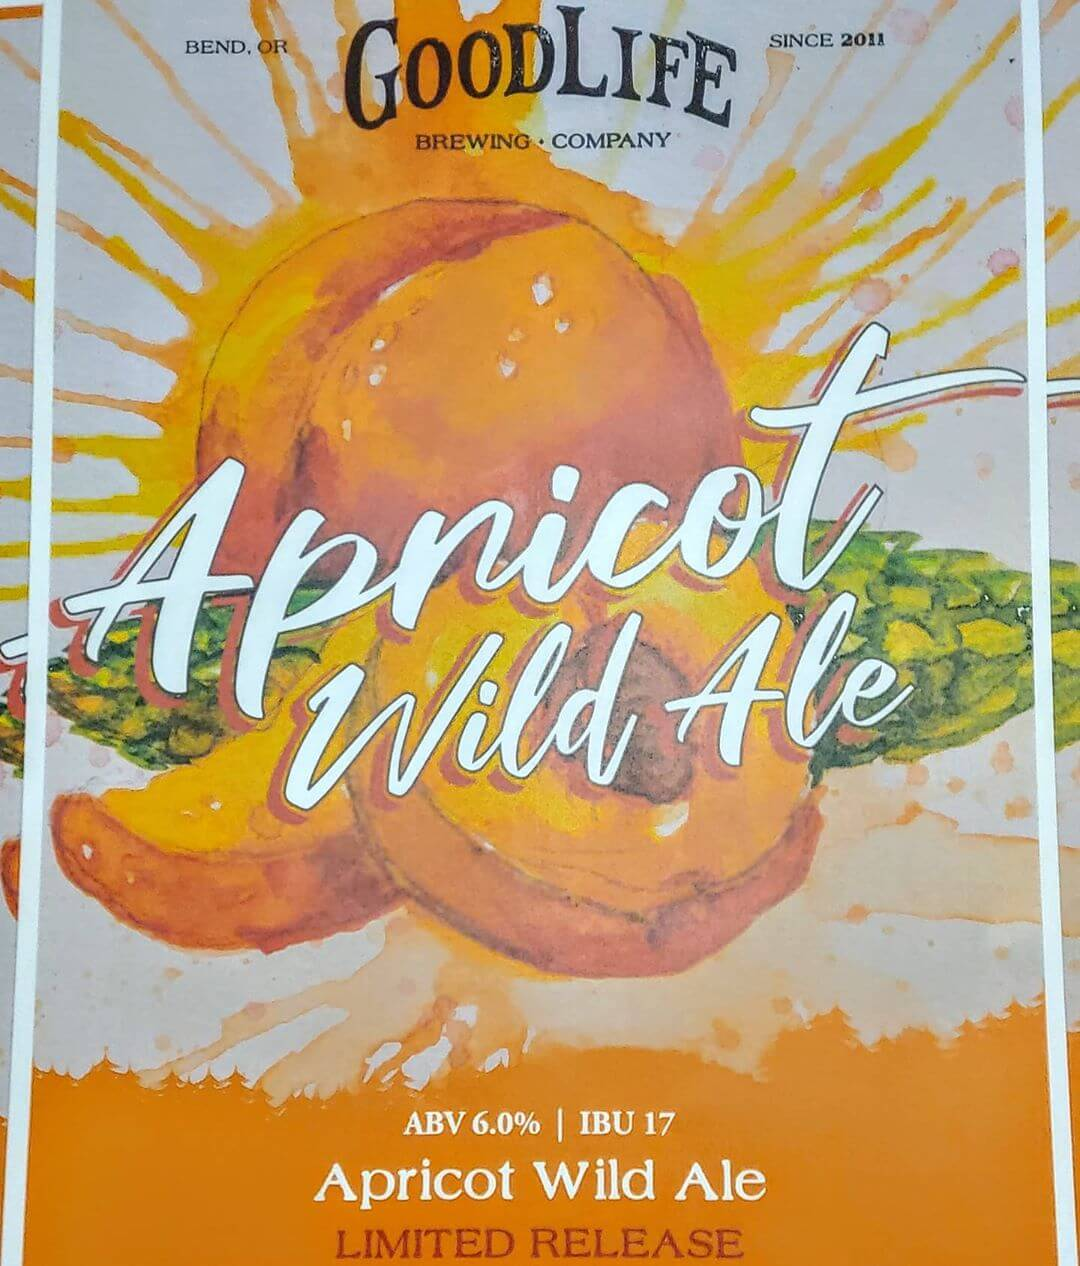 """Apricot Wild Ale: The latest project from our """"In the Woods"""" Barrel-Aged Beer Program. Apricot Wild Ale is a light ale fermented on Brettanomyces, a wild yeast strain producing classic Belgian flavors and aromas. Our brewers then refermented this wild yeast beer on a pound per gallon of Apricot Puree! What we ended up with is a very fruit-forward and refreshing barrel-aged Beer, just in time for Summer! 🍑 Think of biting into a fresh juicy summer apricot.  ABV 6.0% IBU 17 Available in Draft, and 16oz Specialty Cans in the pub and online Oregon Beer by Mail soon."""